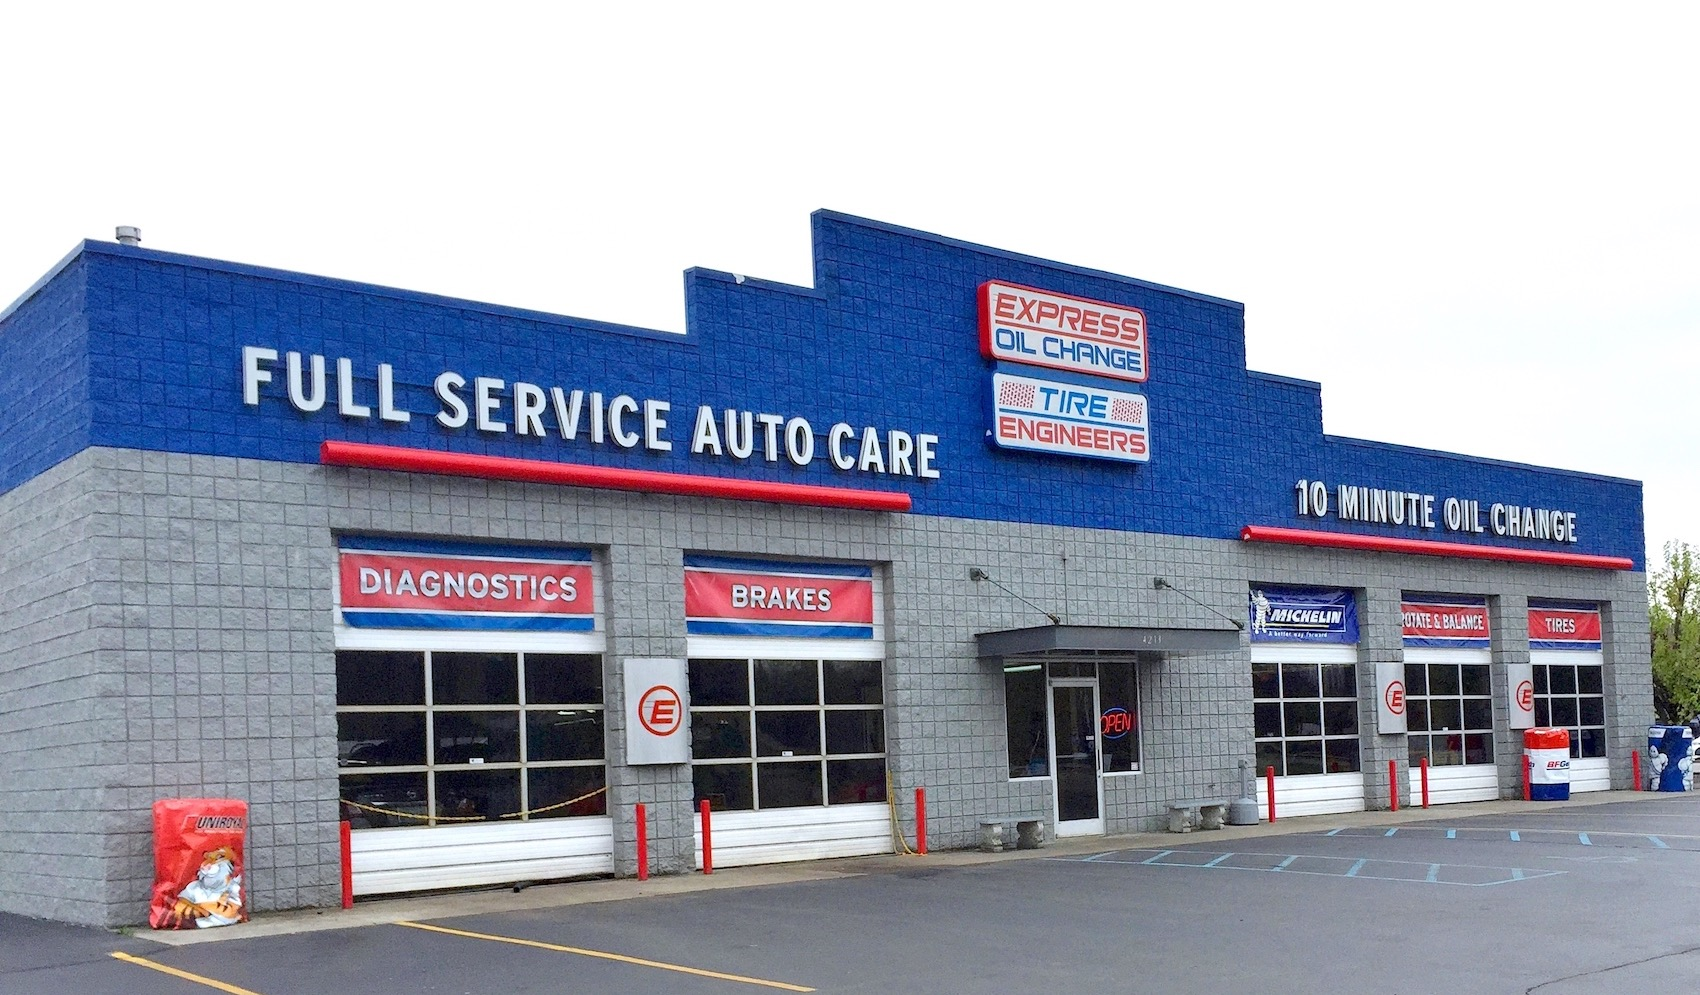 Express Oil Change & Tire Engineers Kingsport, TN - West Stone Drive store